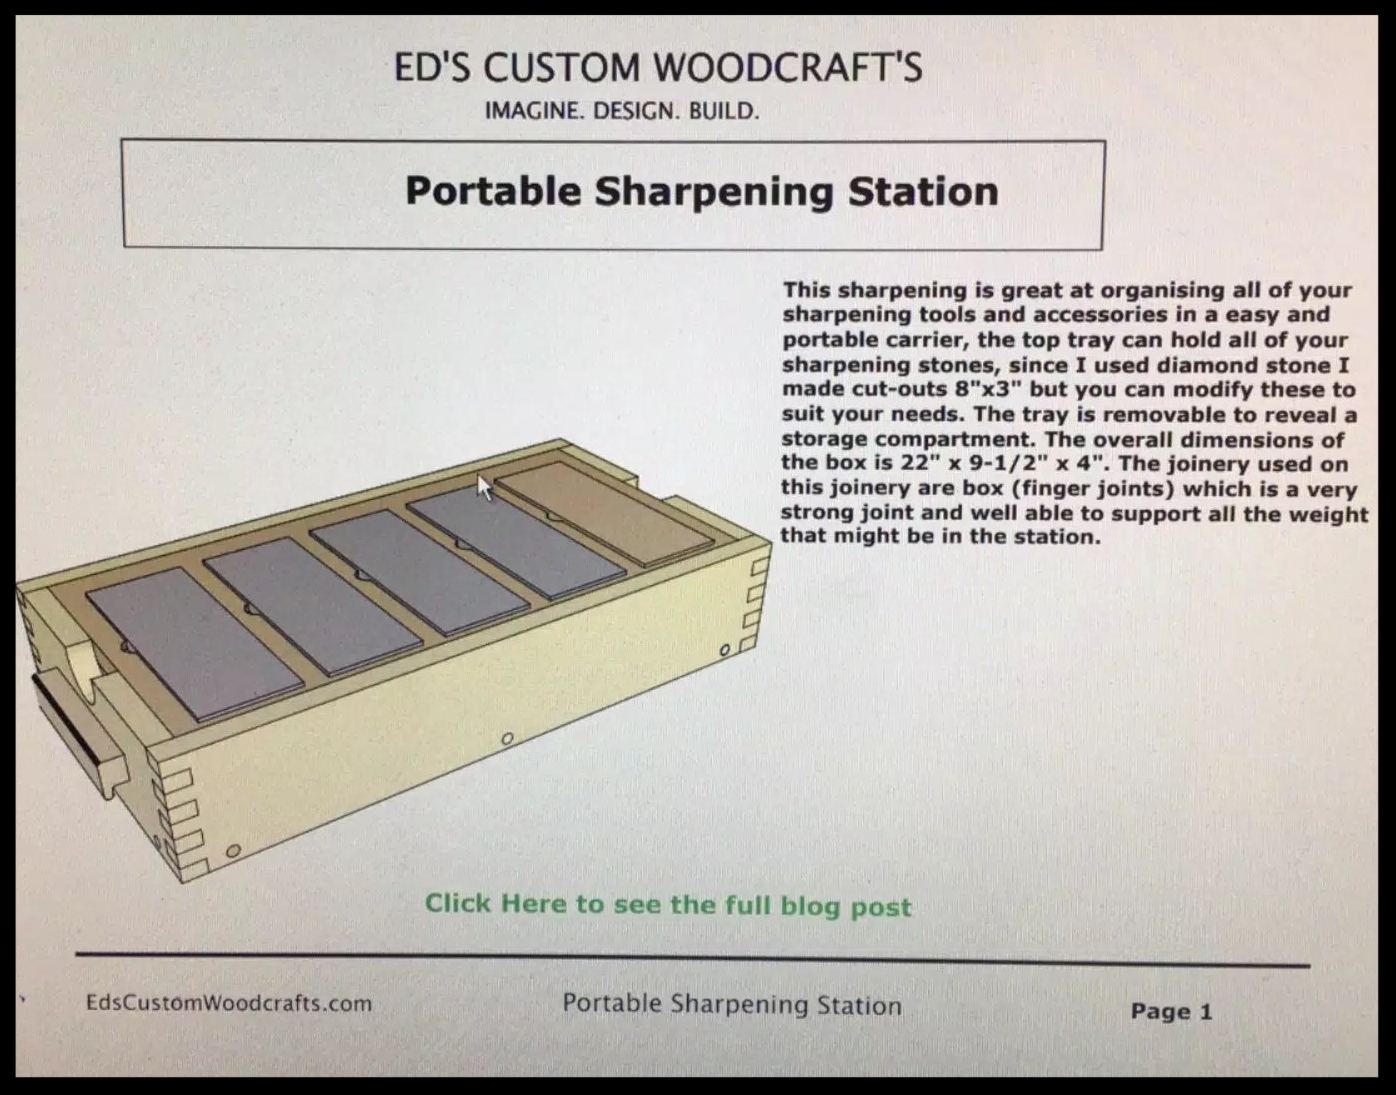 Here is my Sketchup design for the box. The top of the box is a removable tray that houses the sharpening stones and beneath the tray is a storage compartment for all the stones and accessories. I used finger joints to join the box frame together.